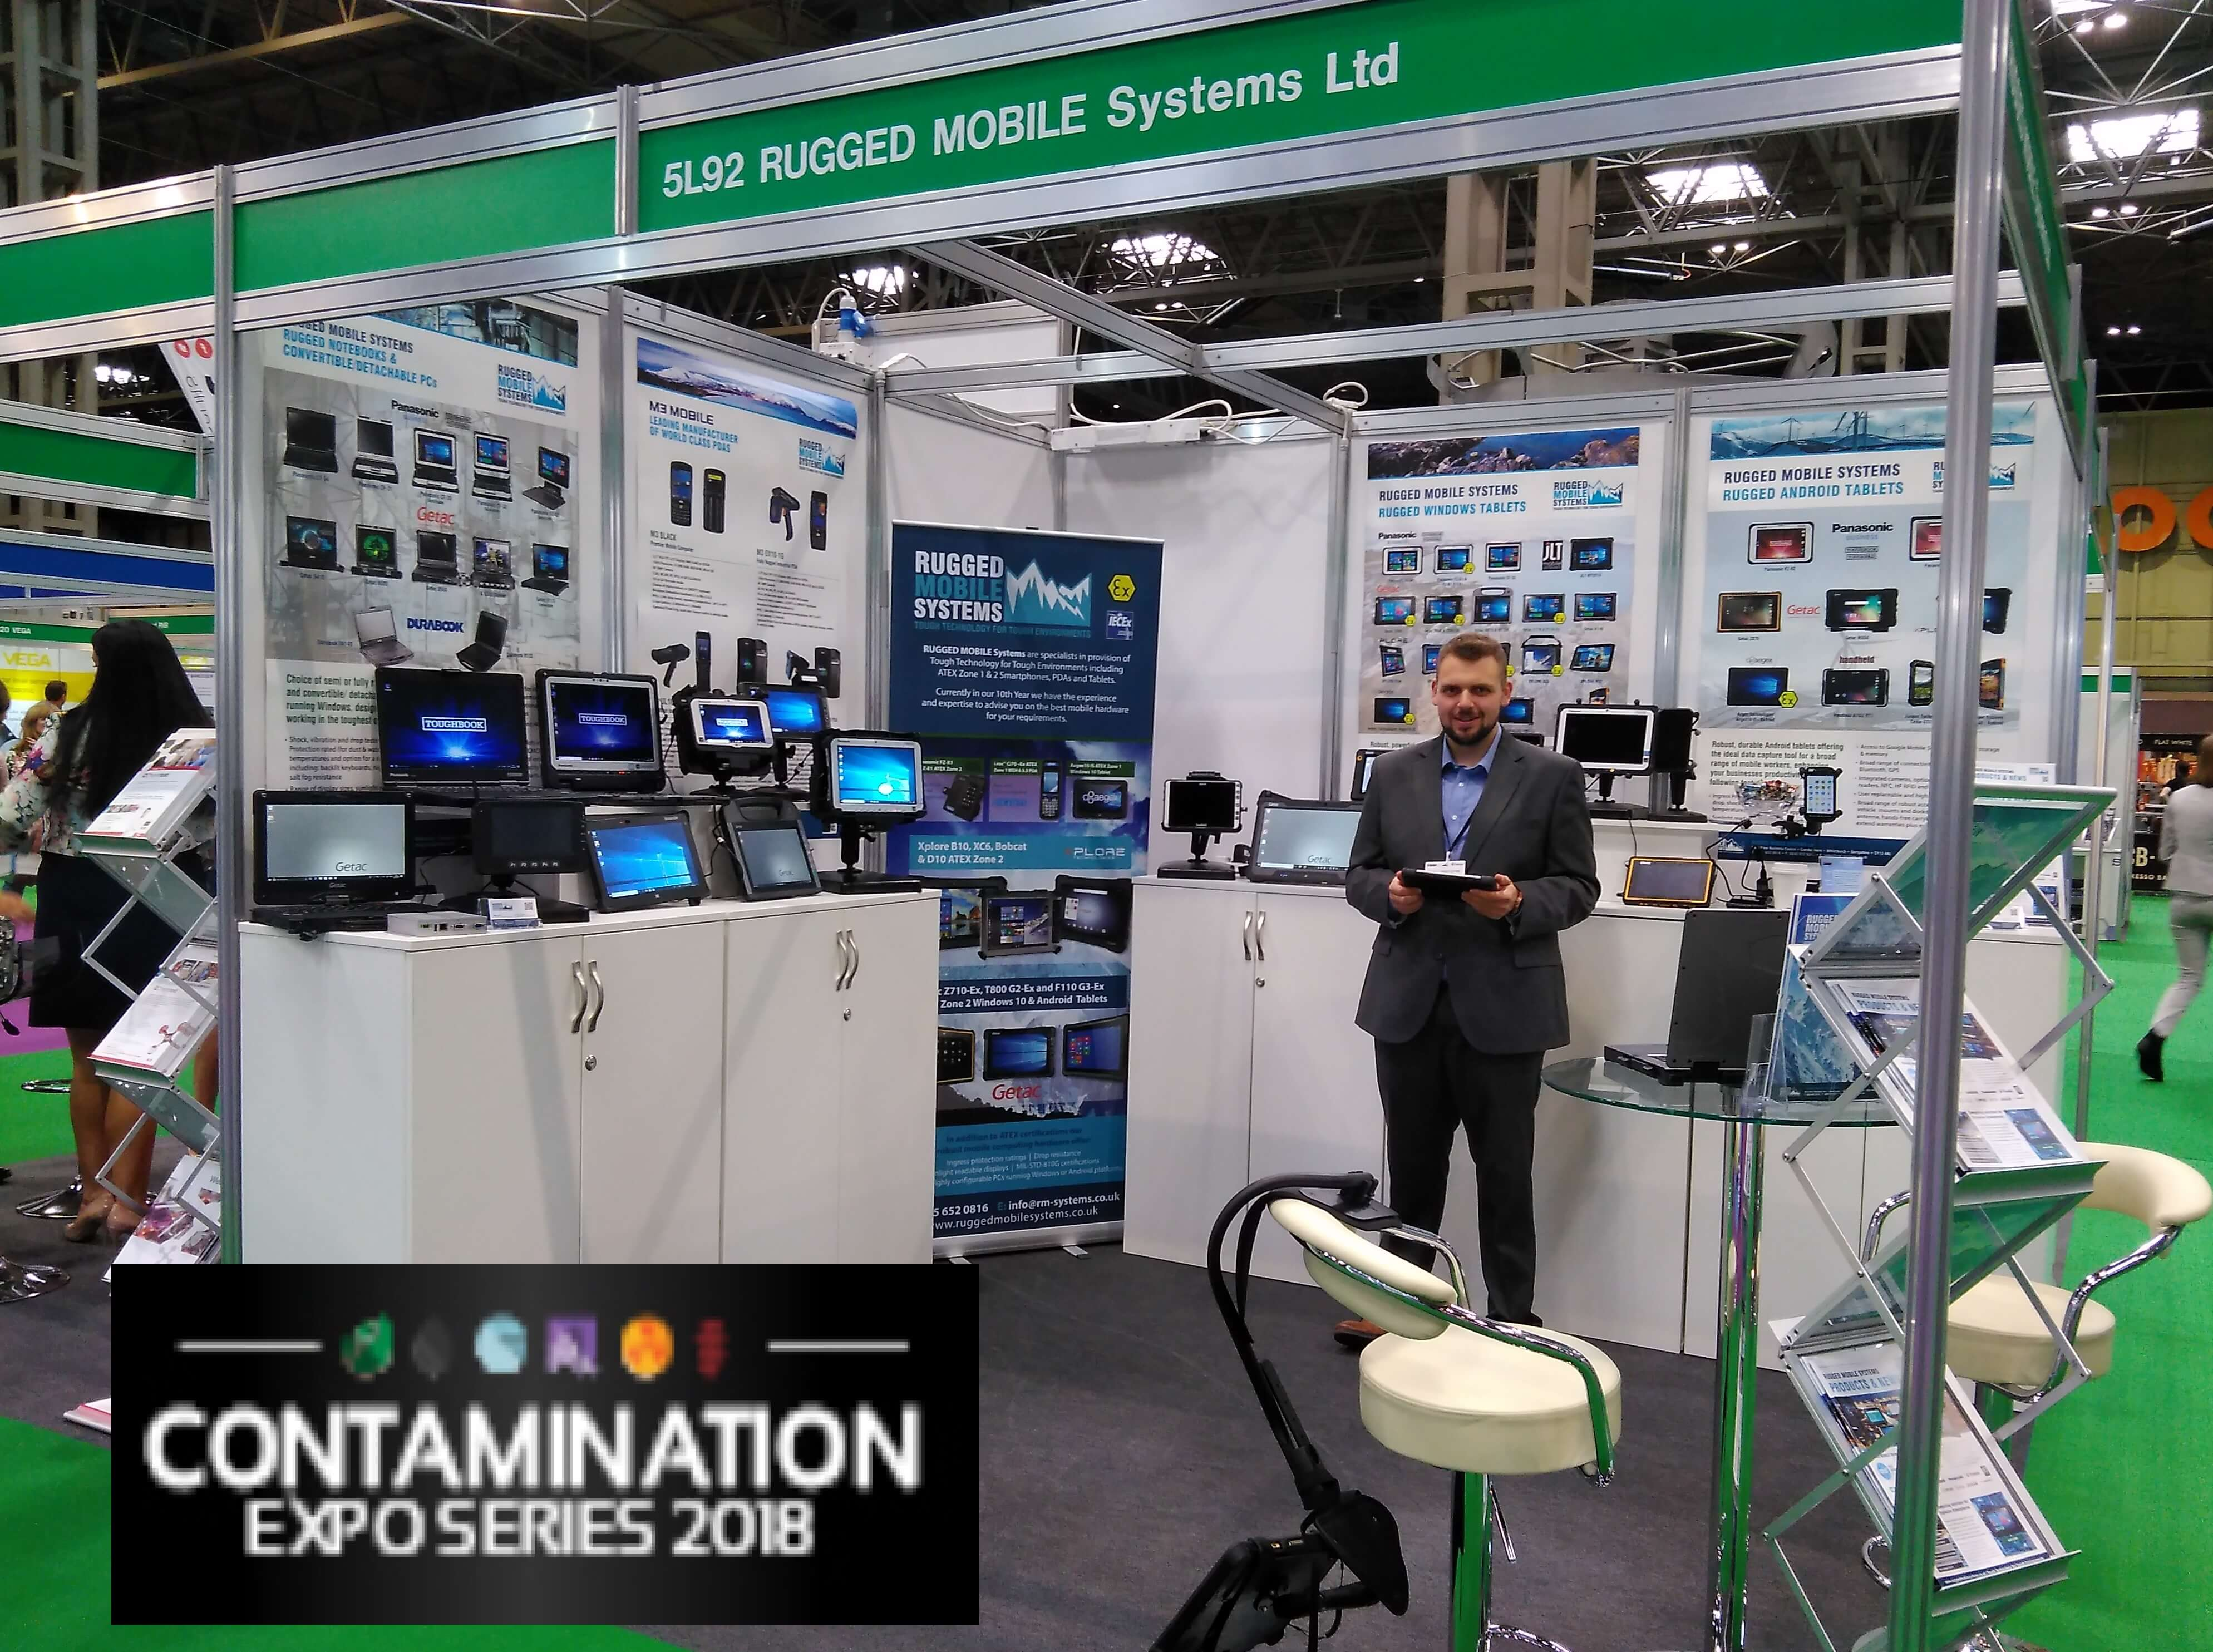 Contamination Expo Series 2018 - A productive 2 days meeting new companies